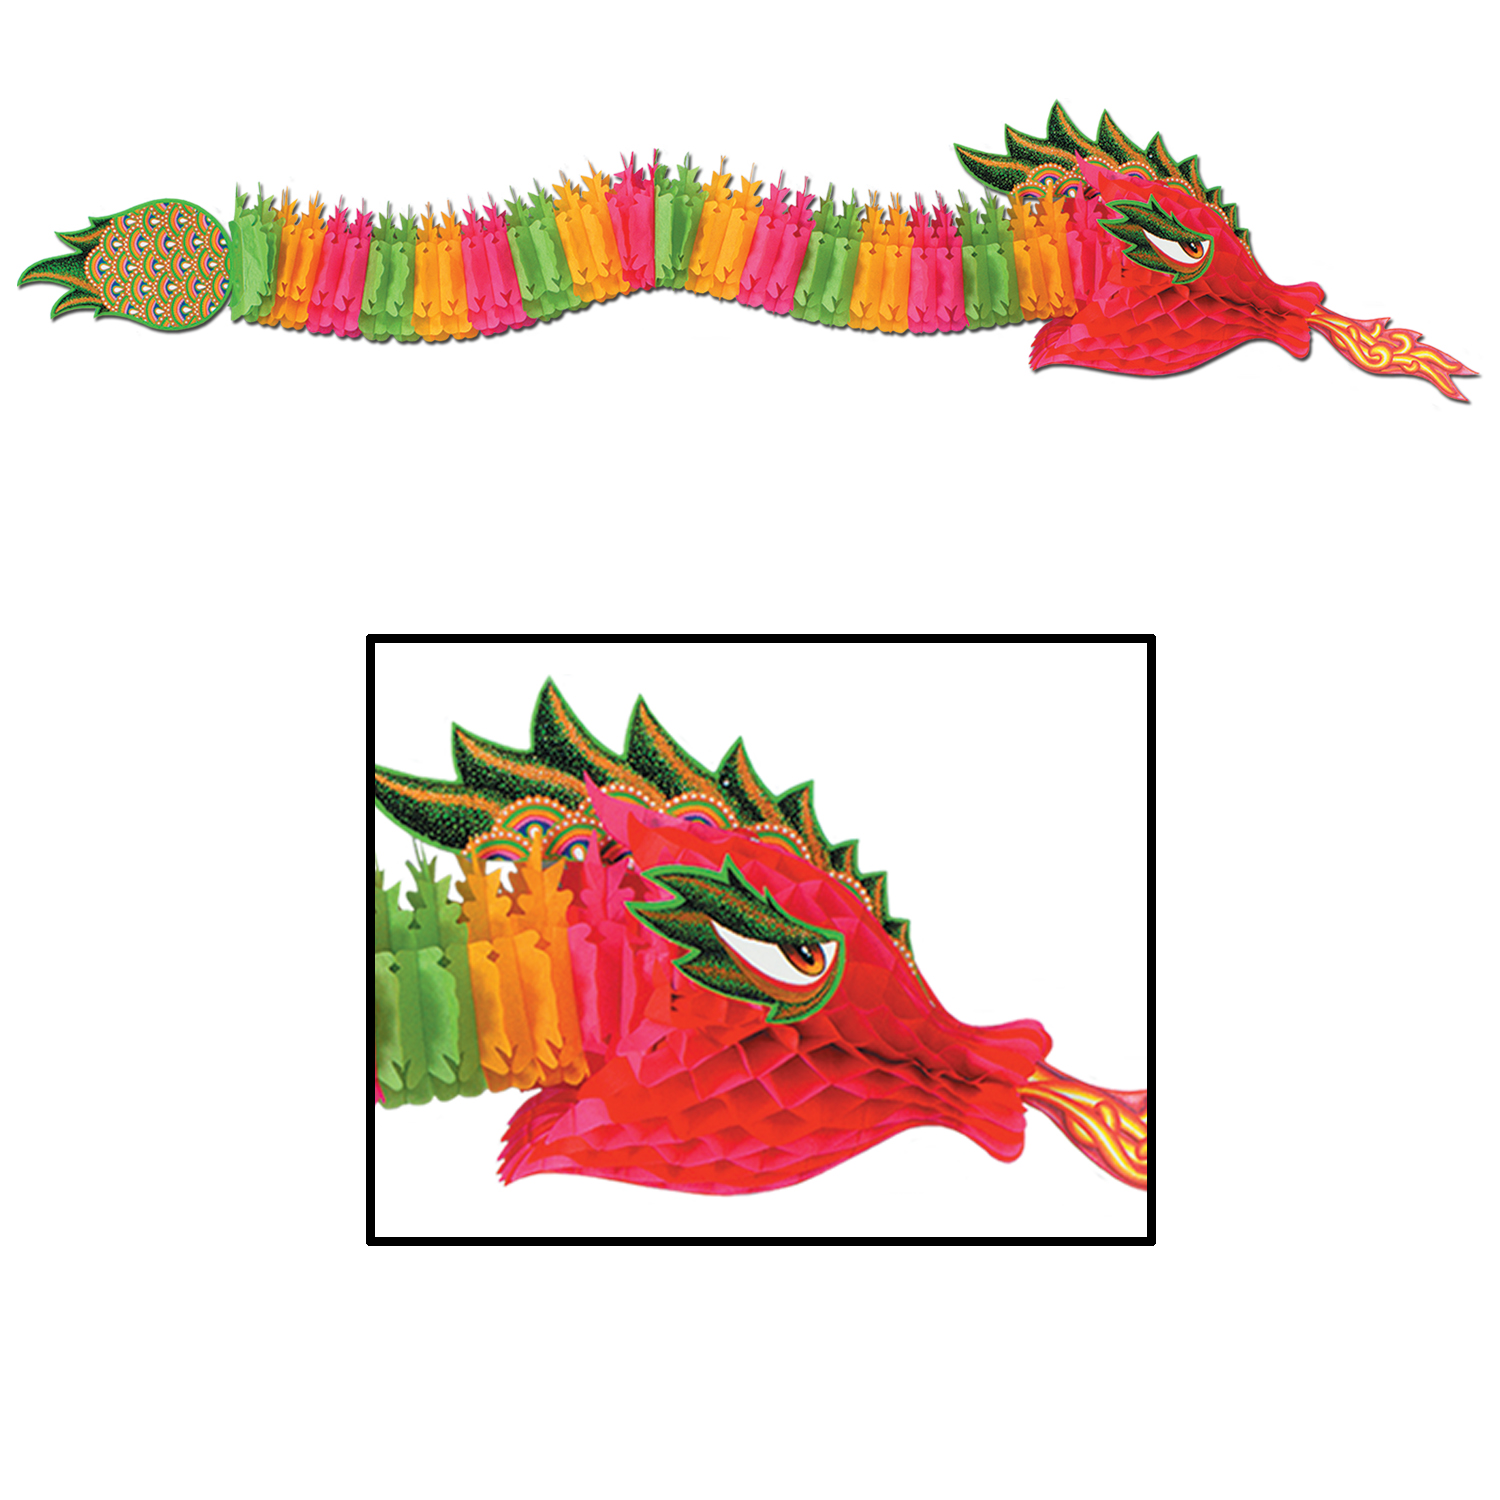 Chinese New Year: Tissue Dragon